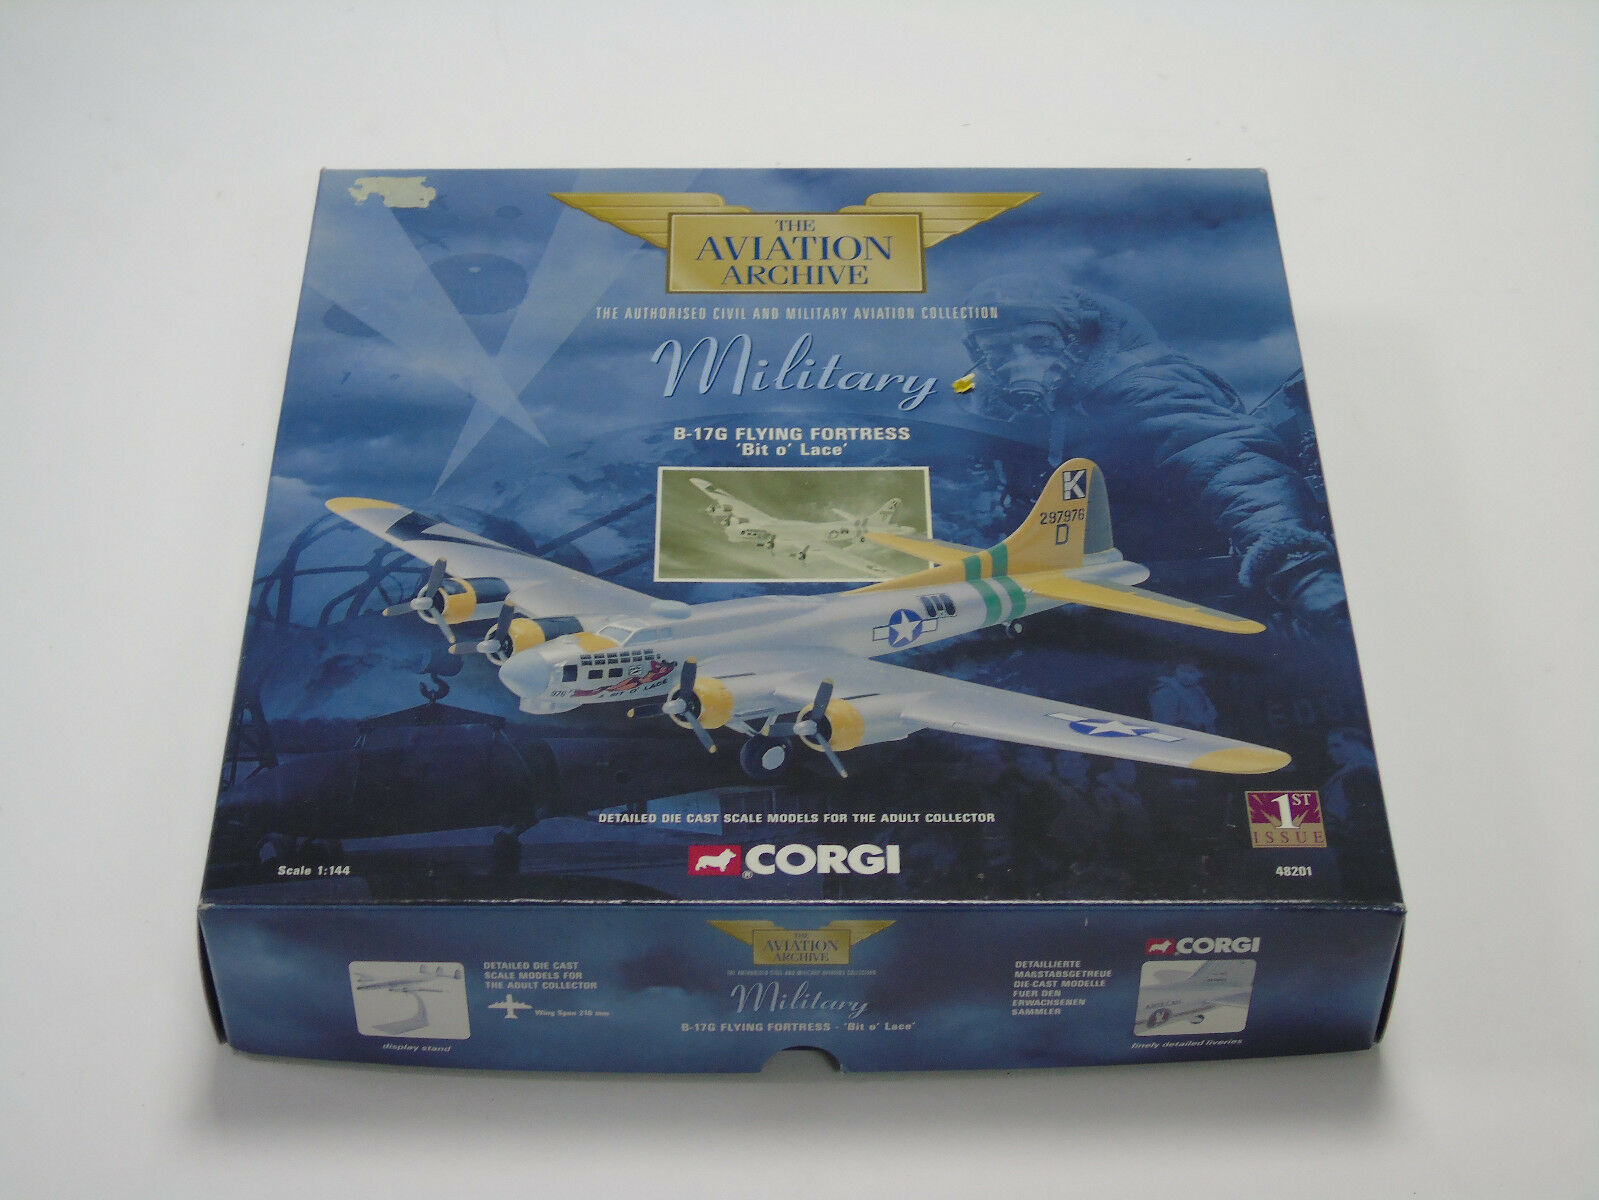 AA48201 Corgi 1 144 Scale B-17G Flying Fortress Bit o' Lace 1st Issue New Boxed